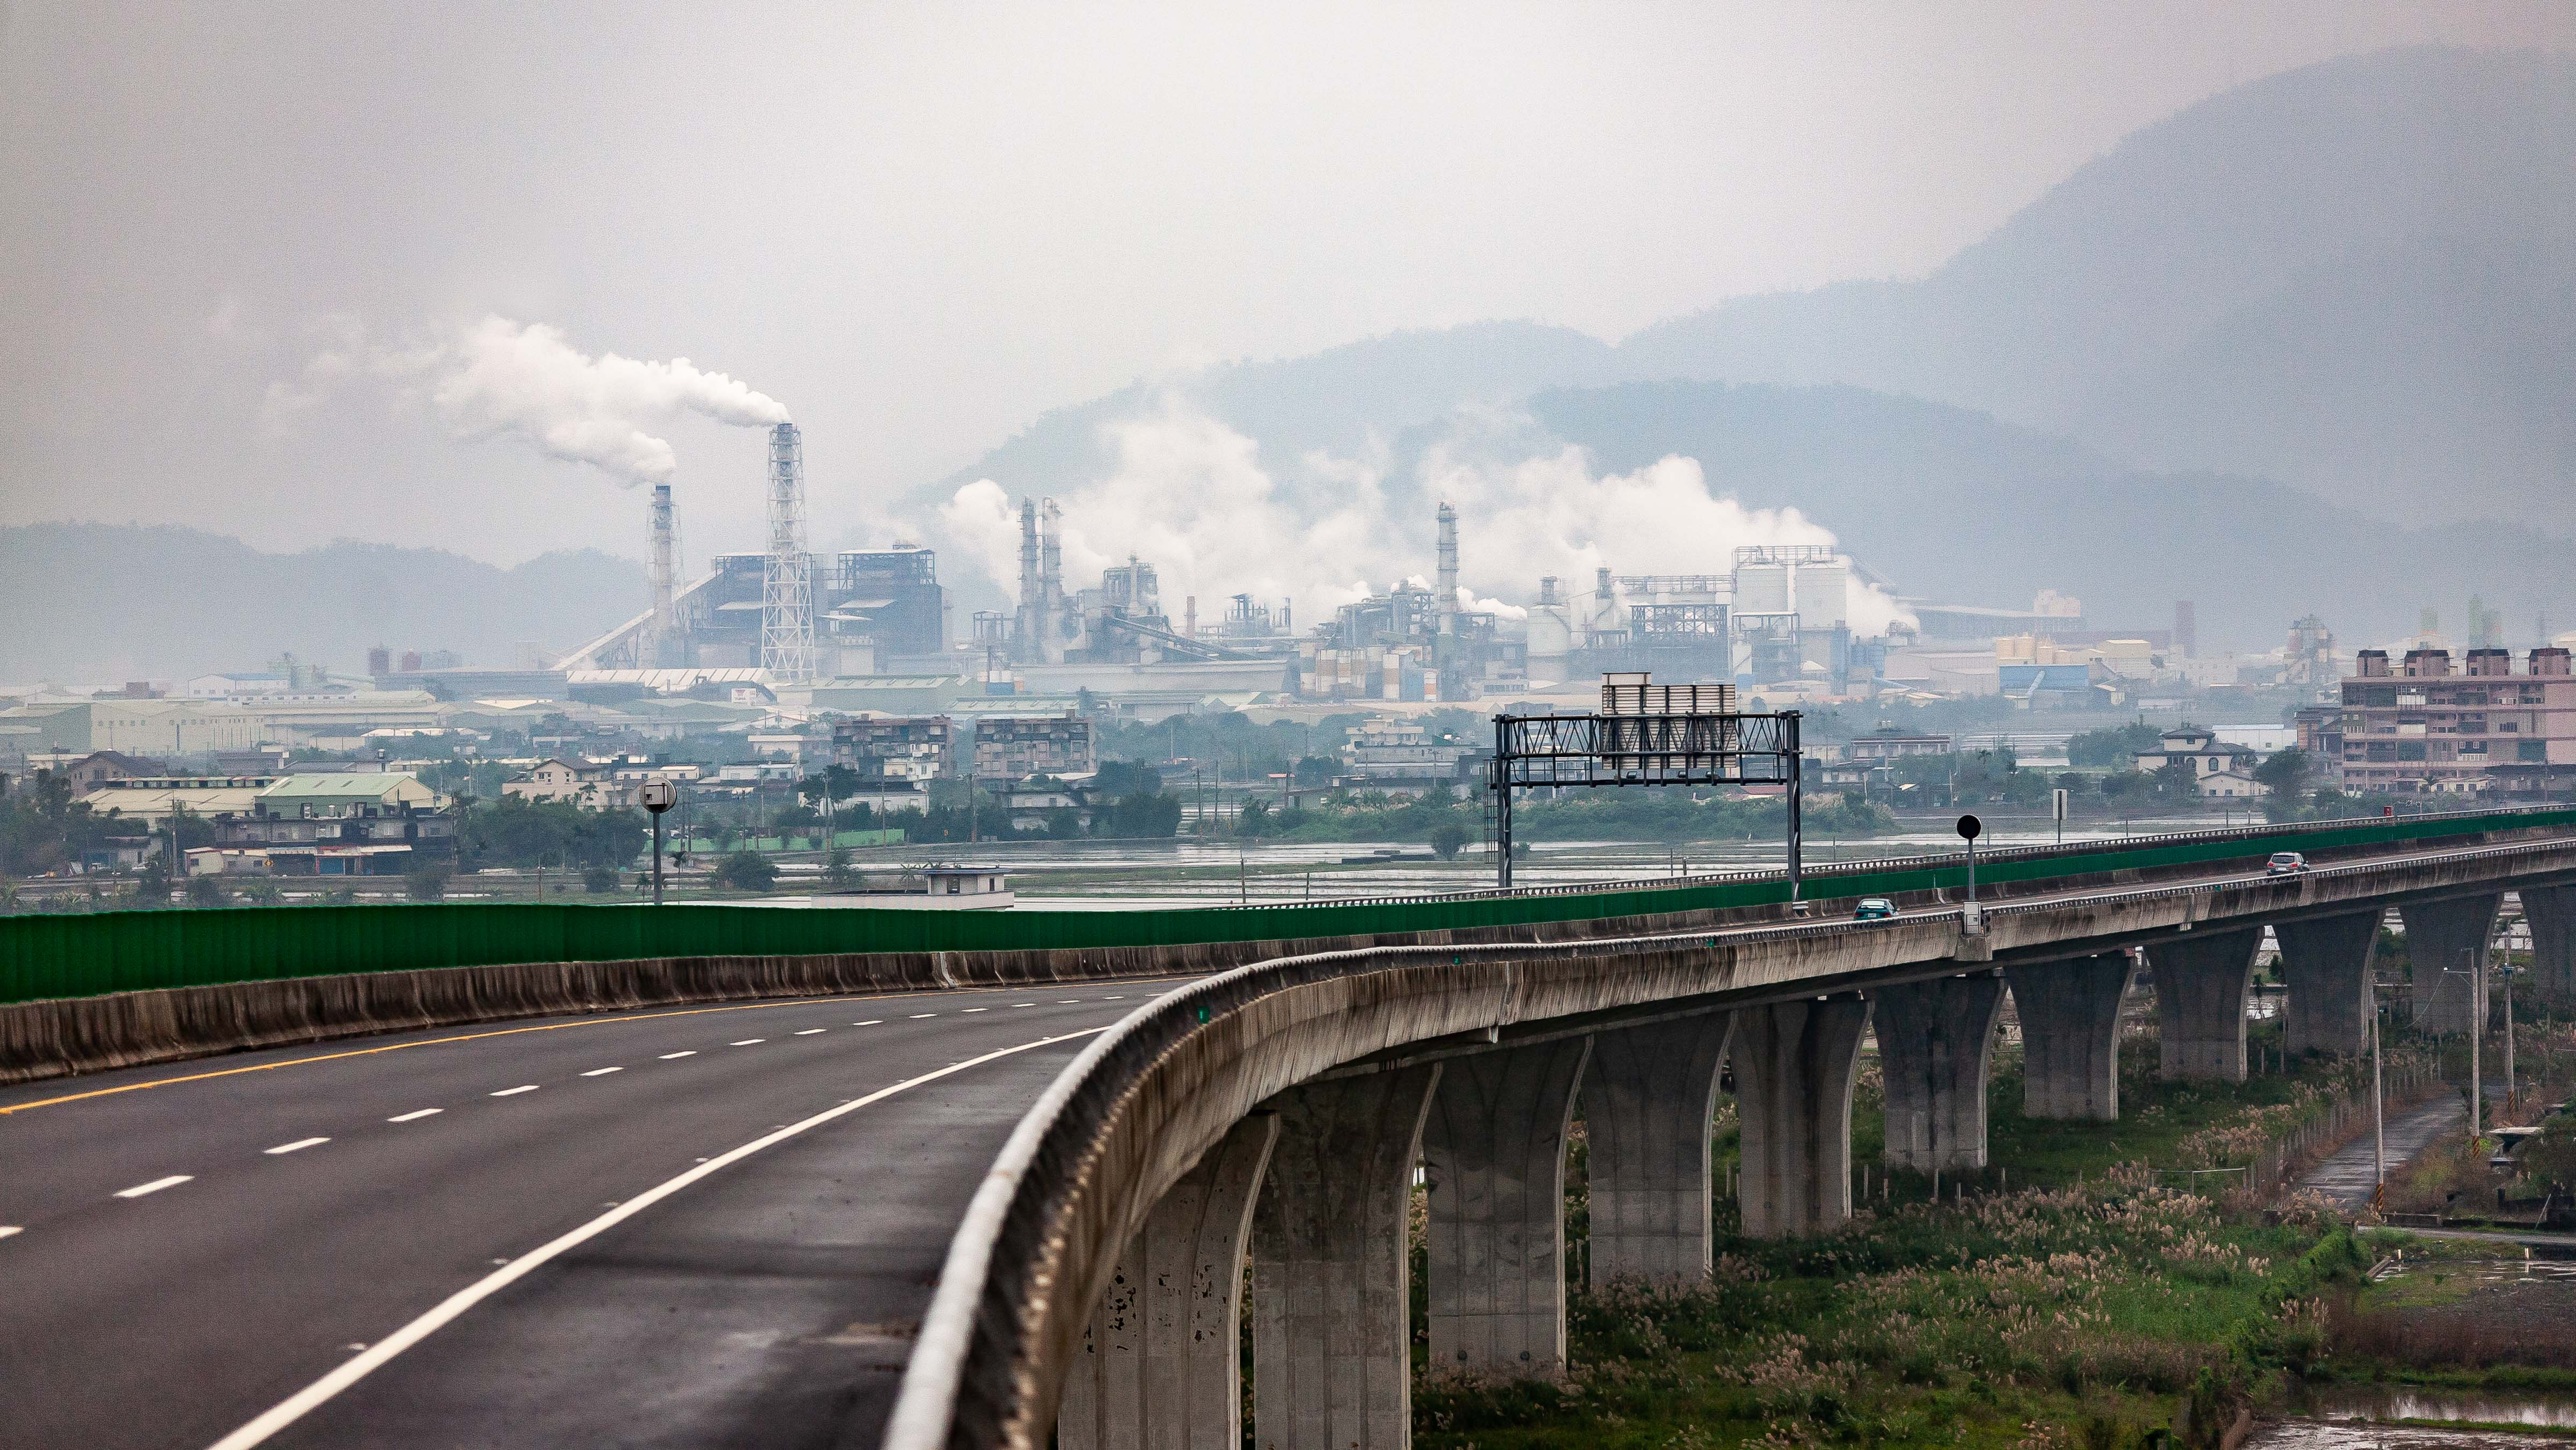 Taiwan, Ilan County Prov, Roadway Bridge, 2009, IMG 3629